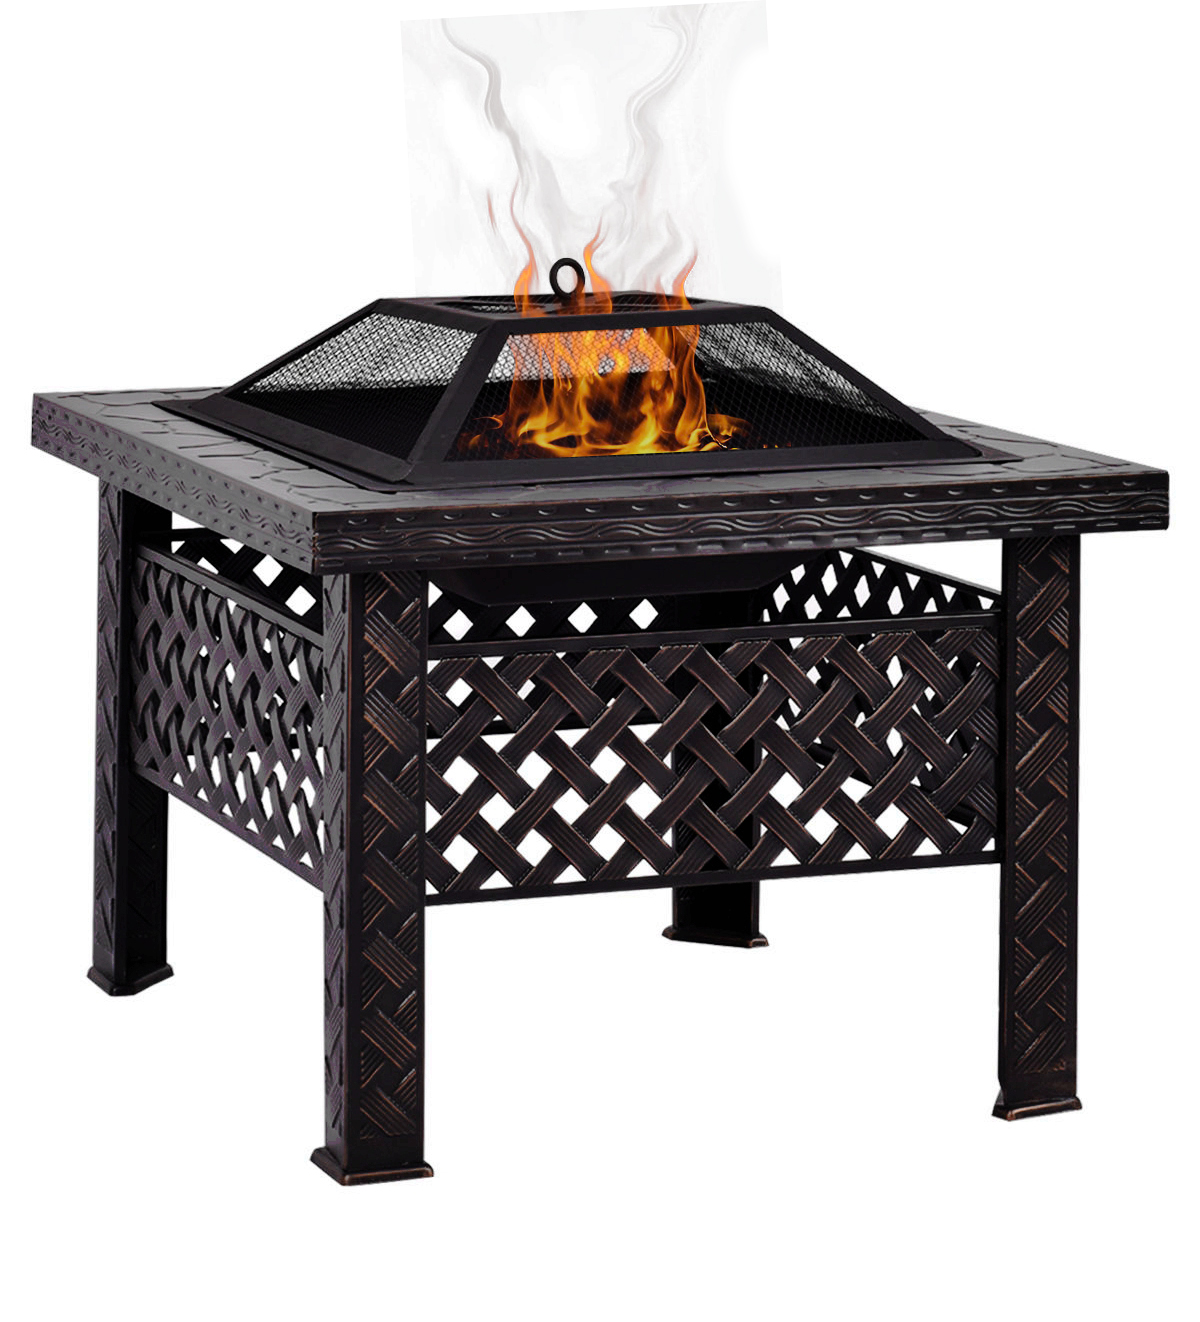 "Magshion 26"" Square Woven Fire Pit Fire Bowl BBQ Burning Grill Patio Heater W Poker Grate Without Cover"